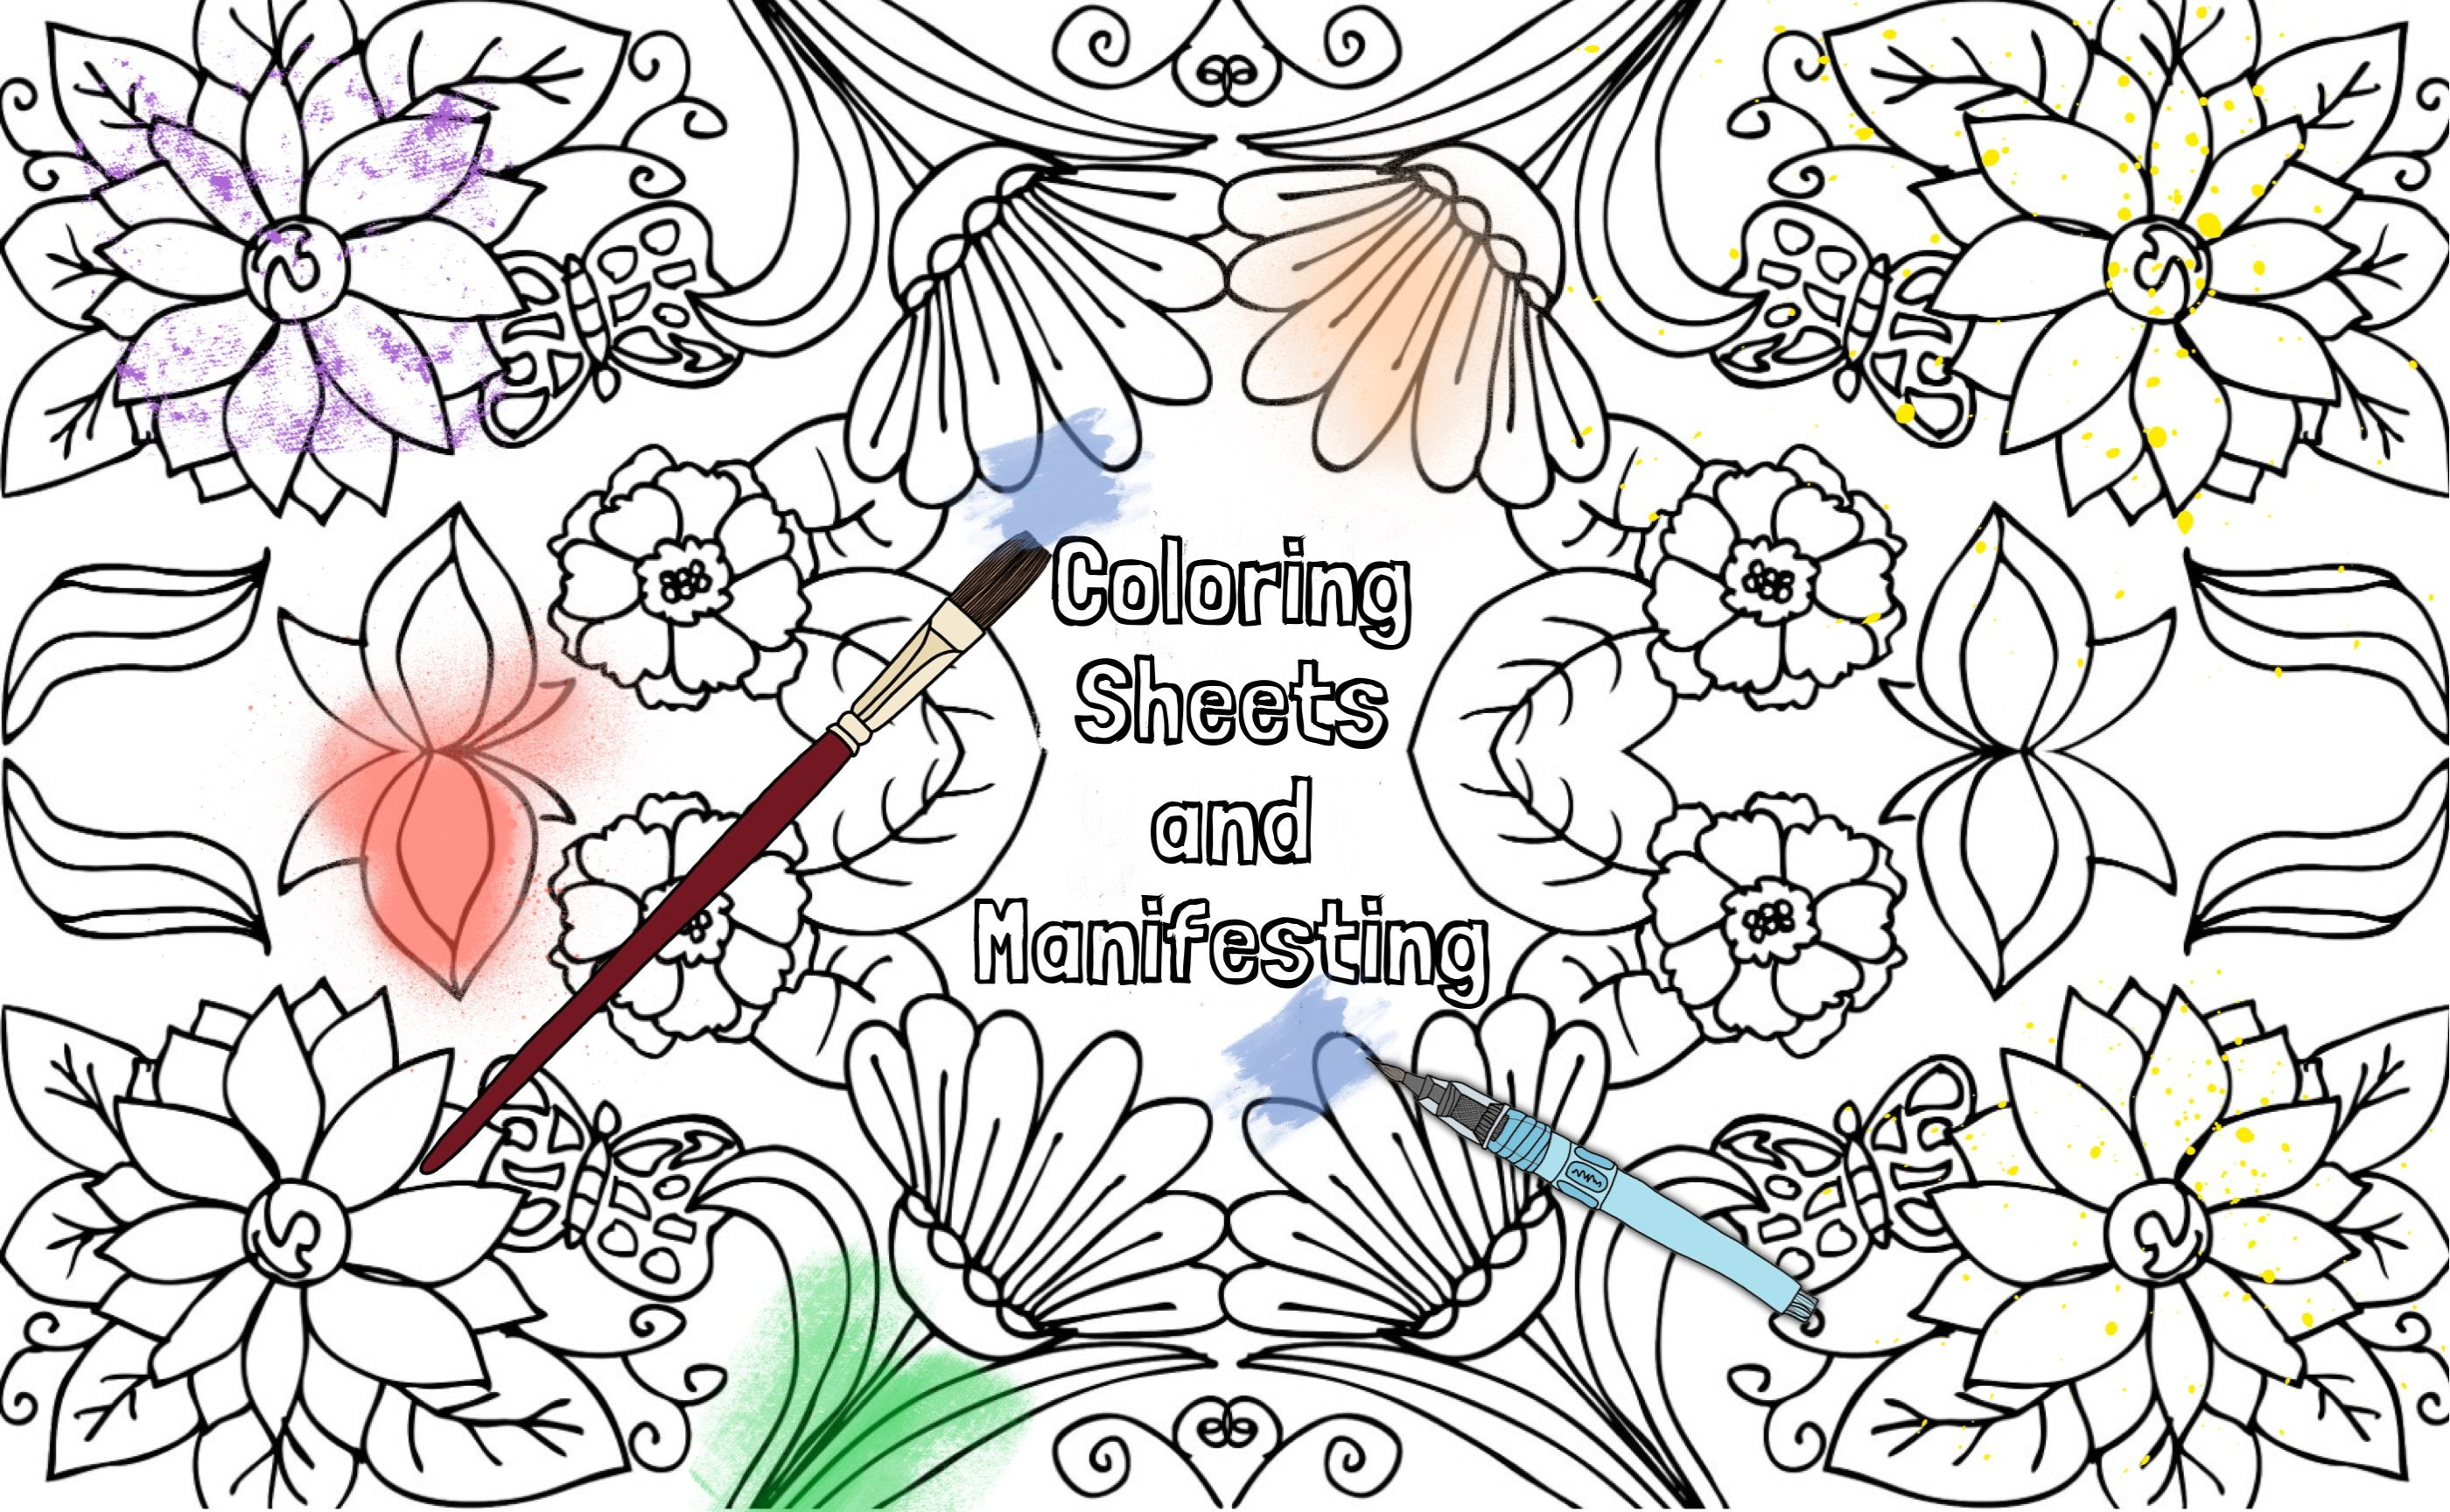 Affirmation Coloring Sheets Amp Manifesting This Is A Great